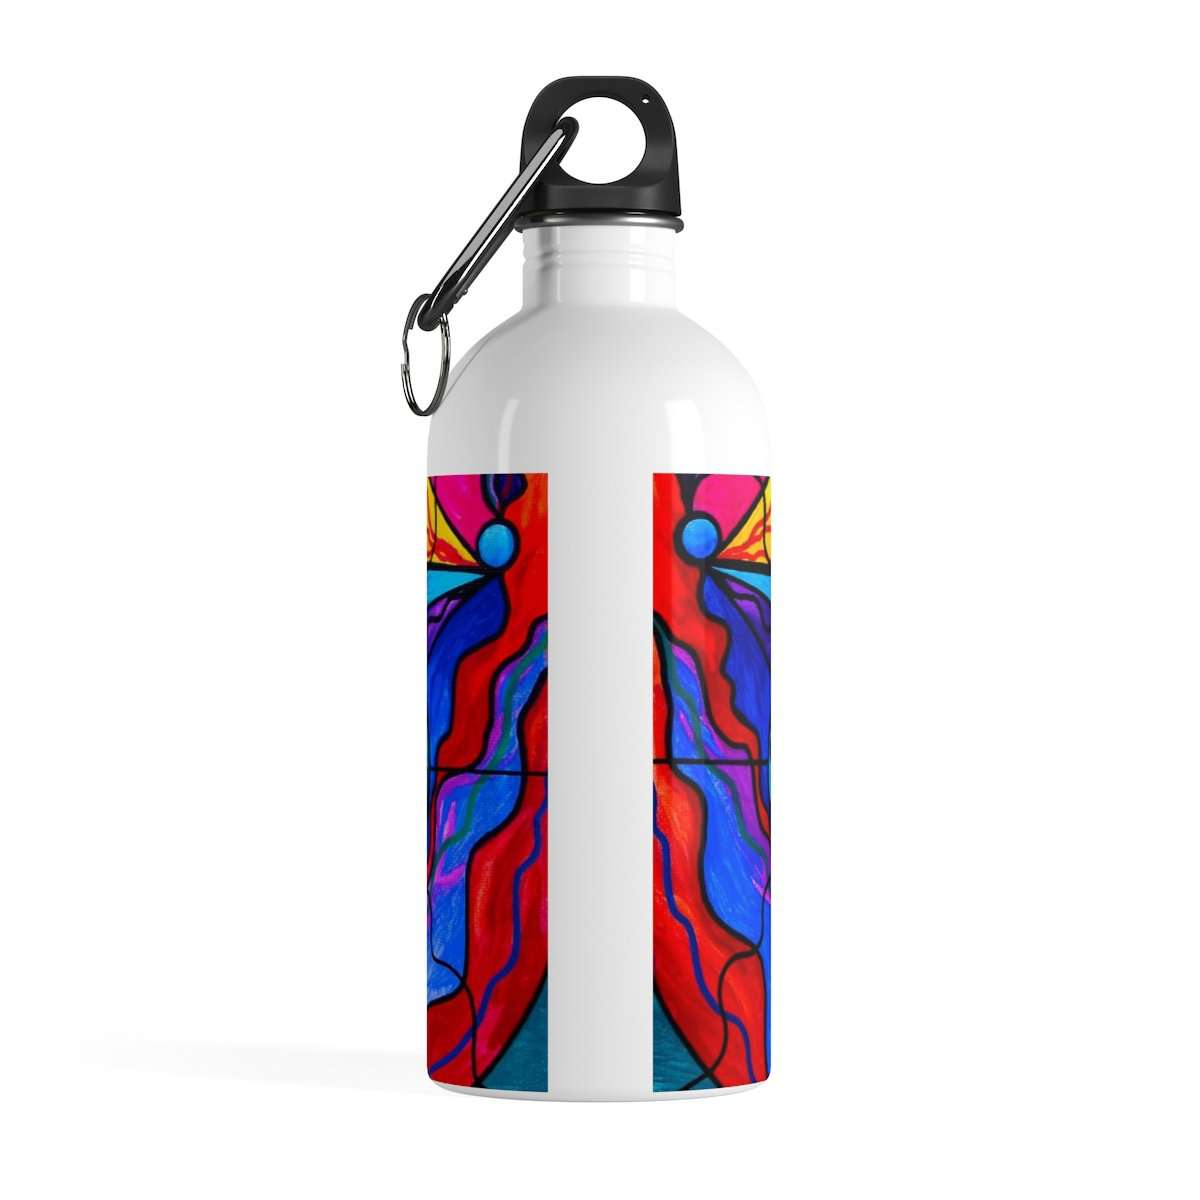 The Catalyst - Stainless Steel Water Bottle